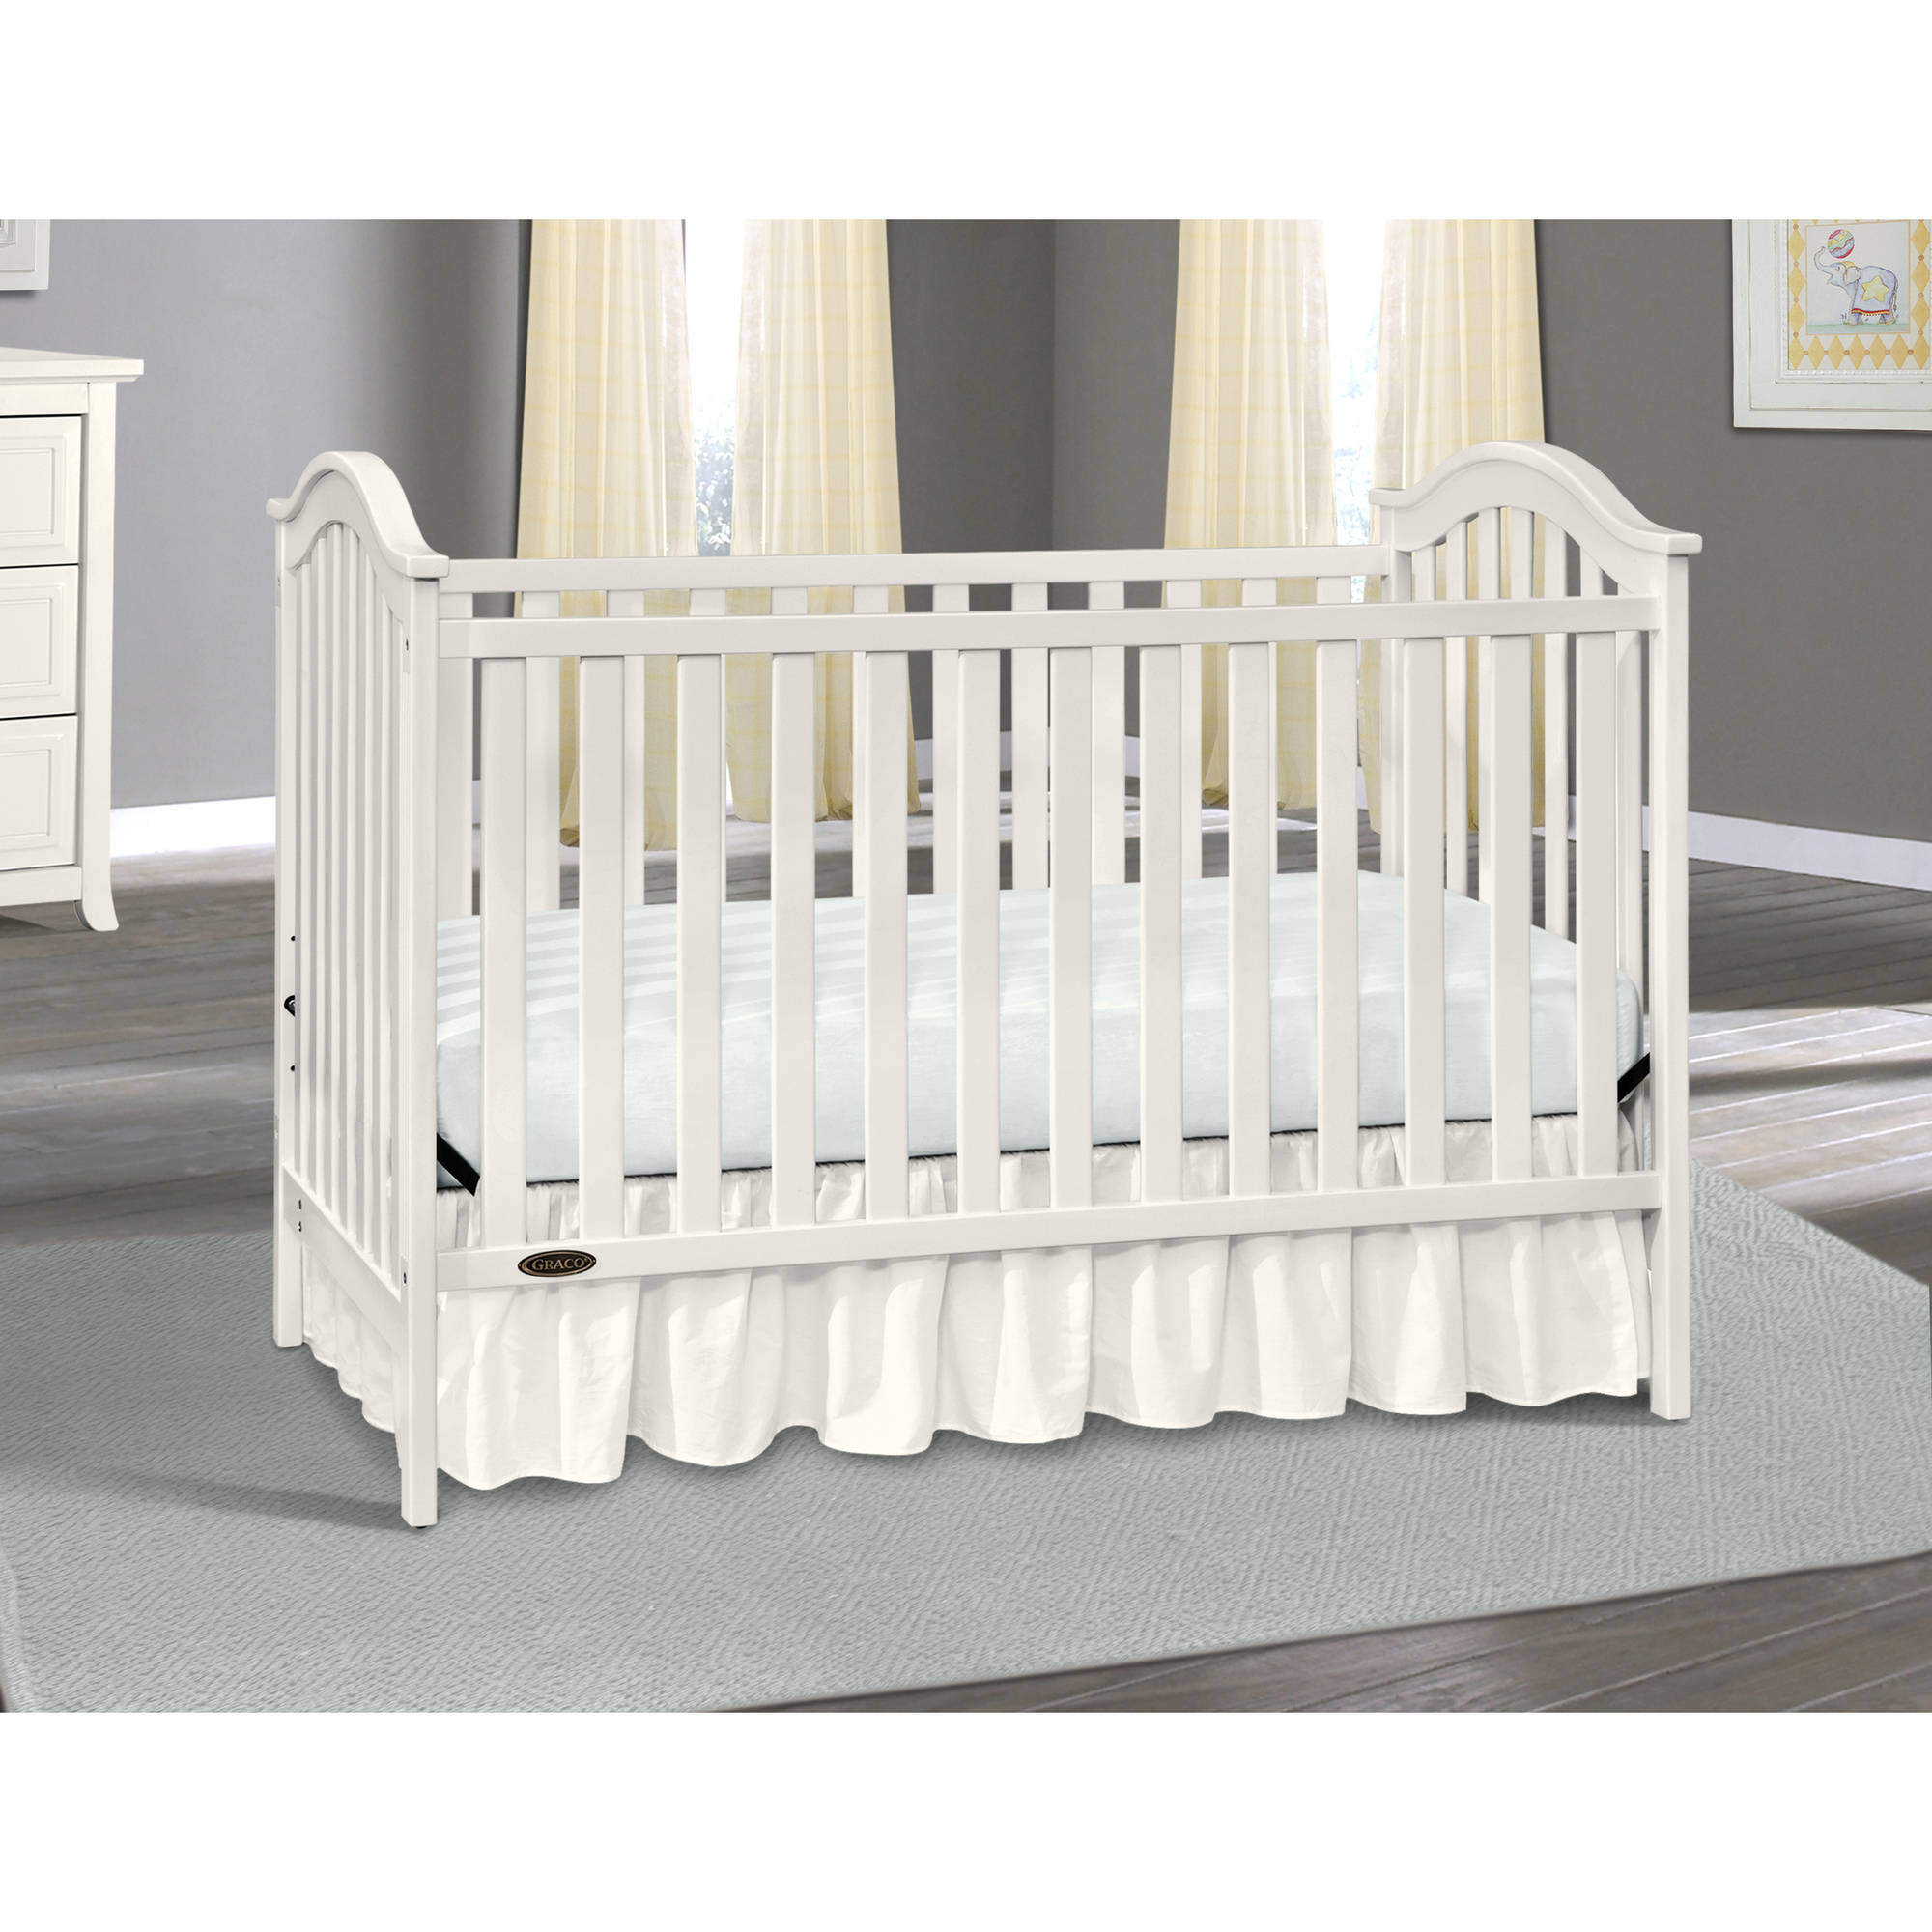 Graco Ashland Classic 3 In 1 Convertible Crib White Walmart Com